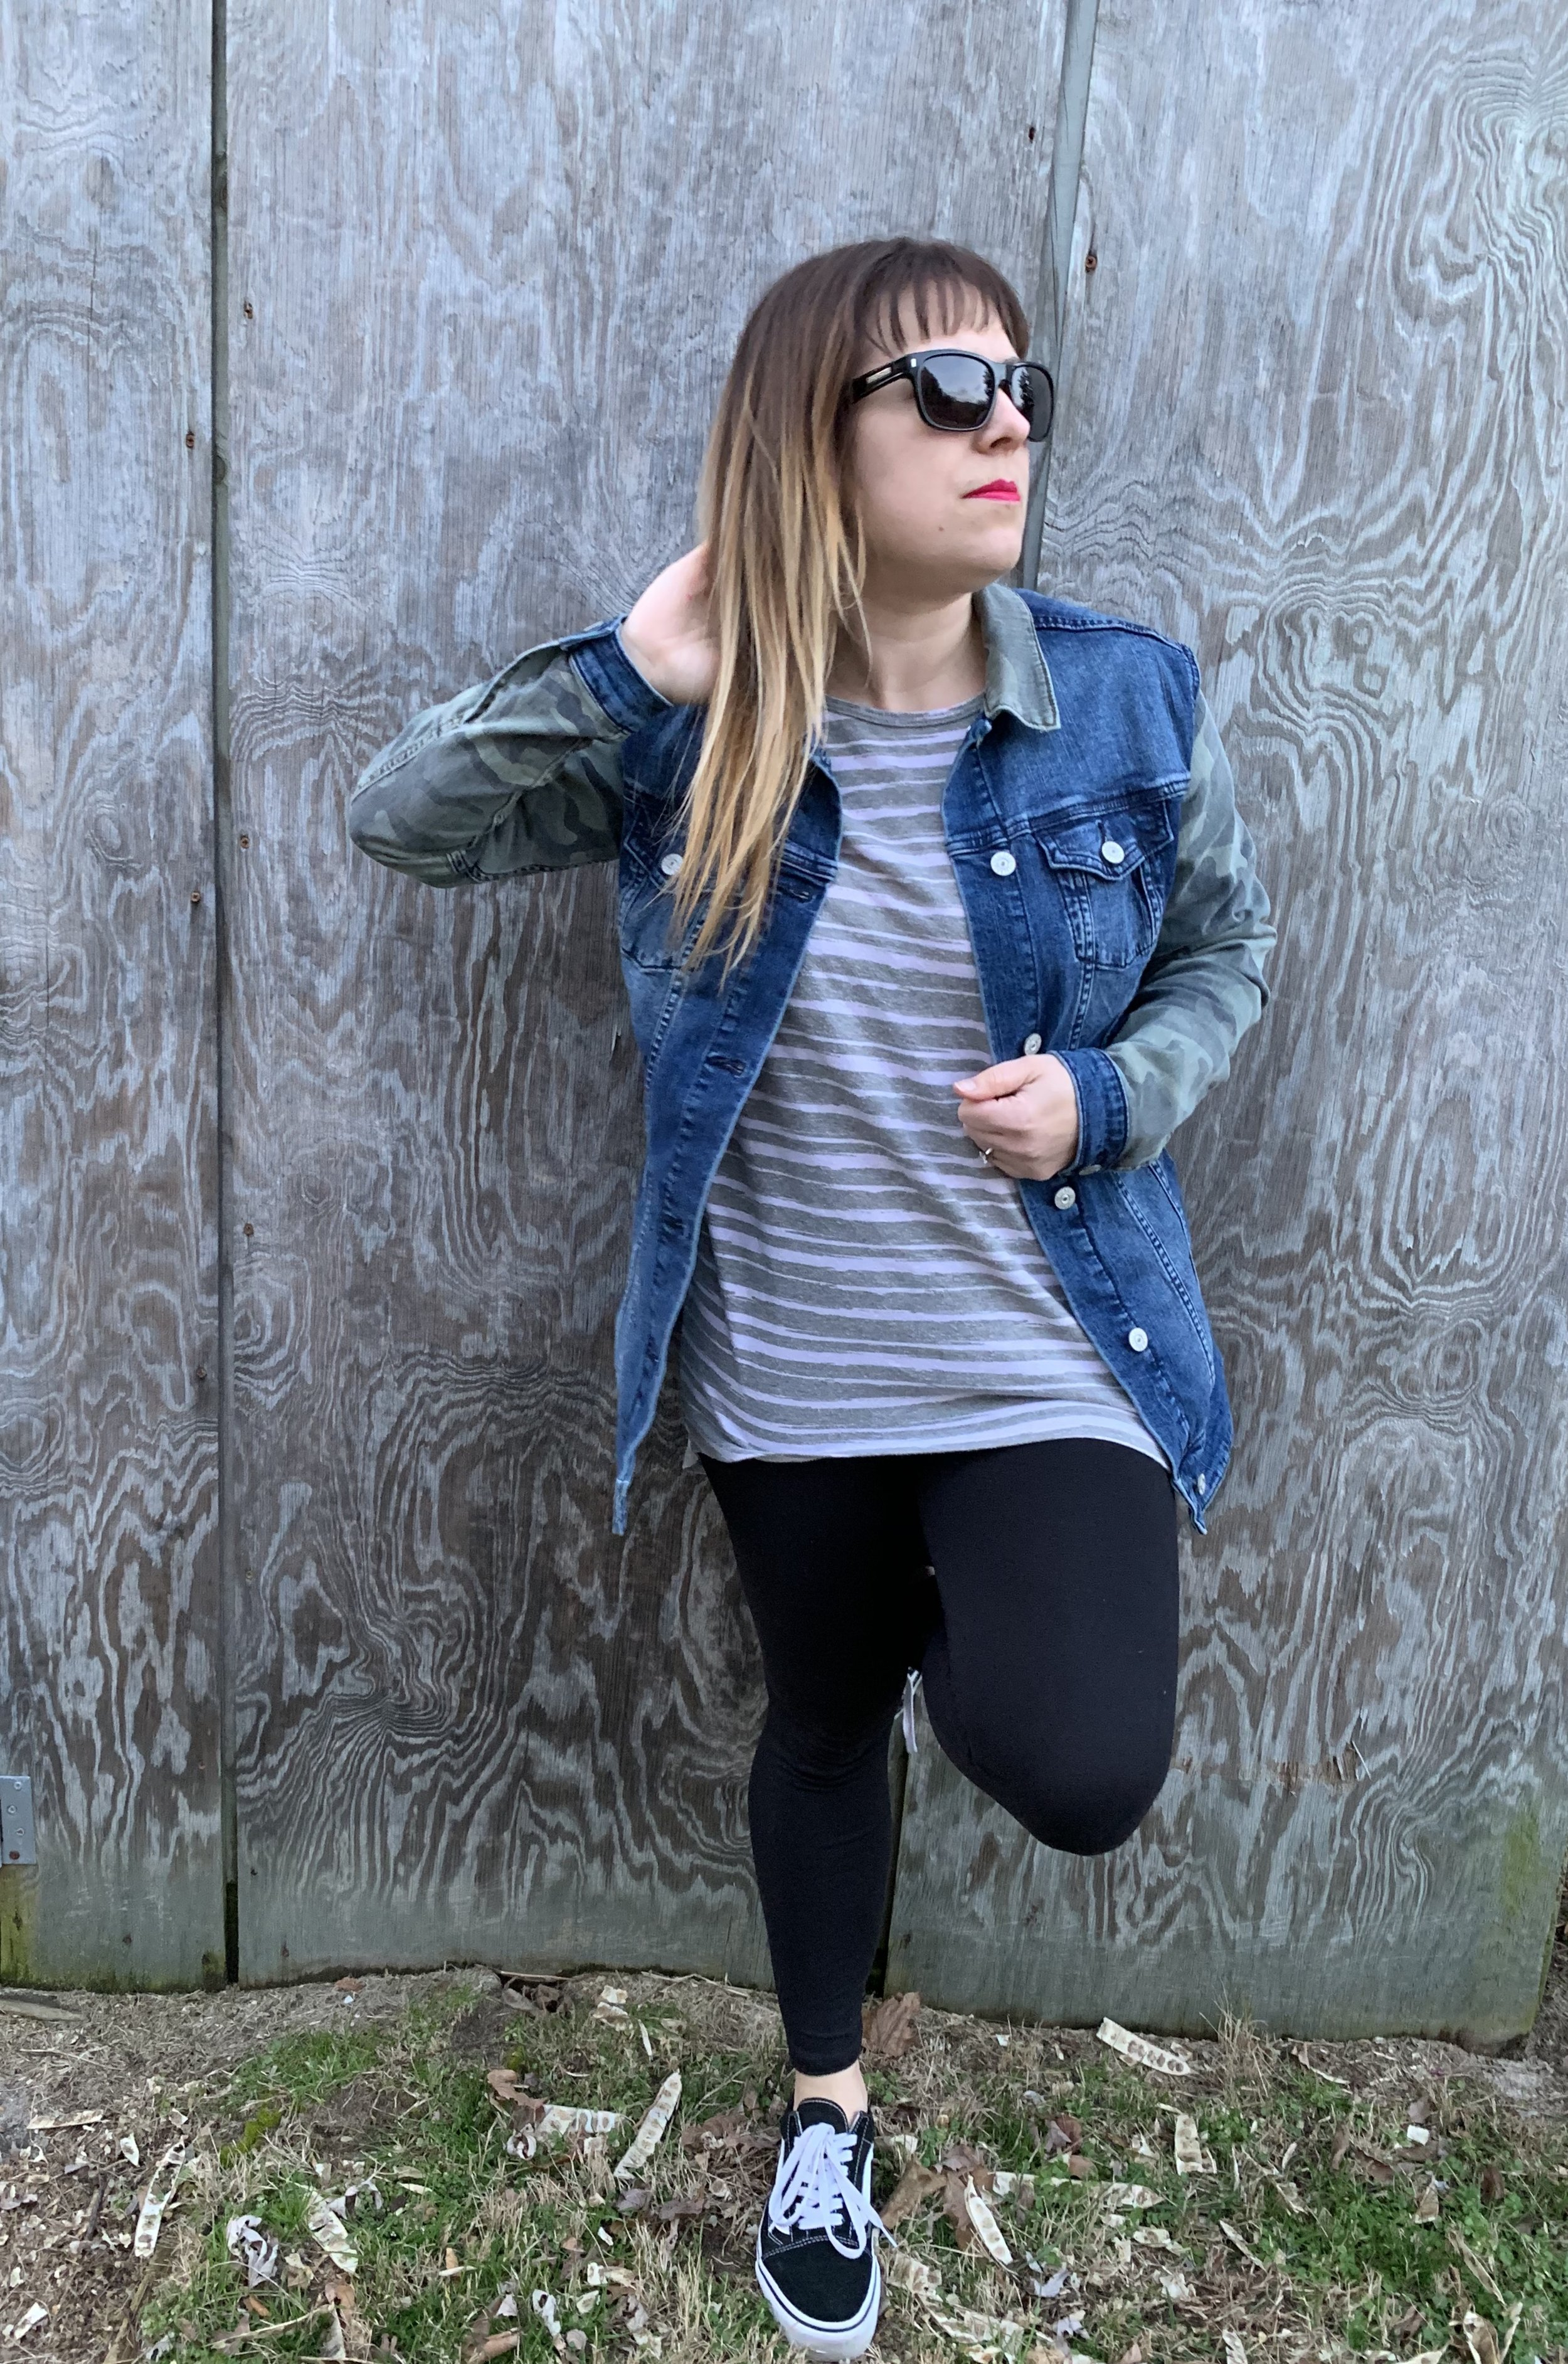 4) Lightweight Jacket - A cute denim jacket or bomber style jacket can take your outfit to a new level and they look great with your year round looks.